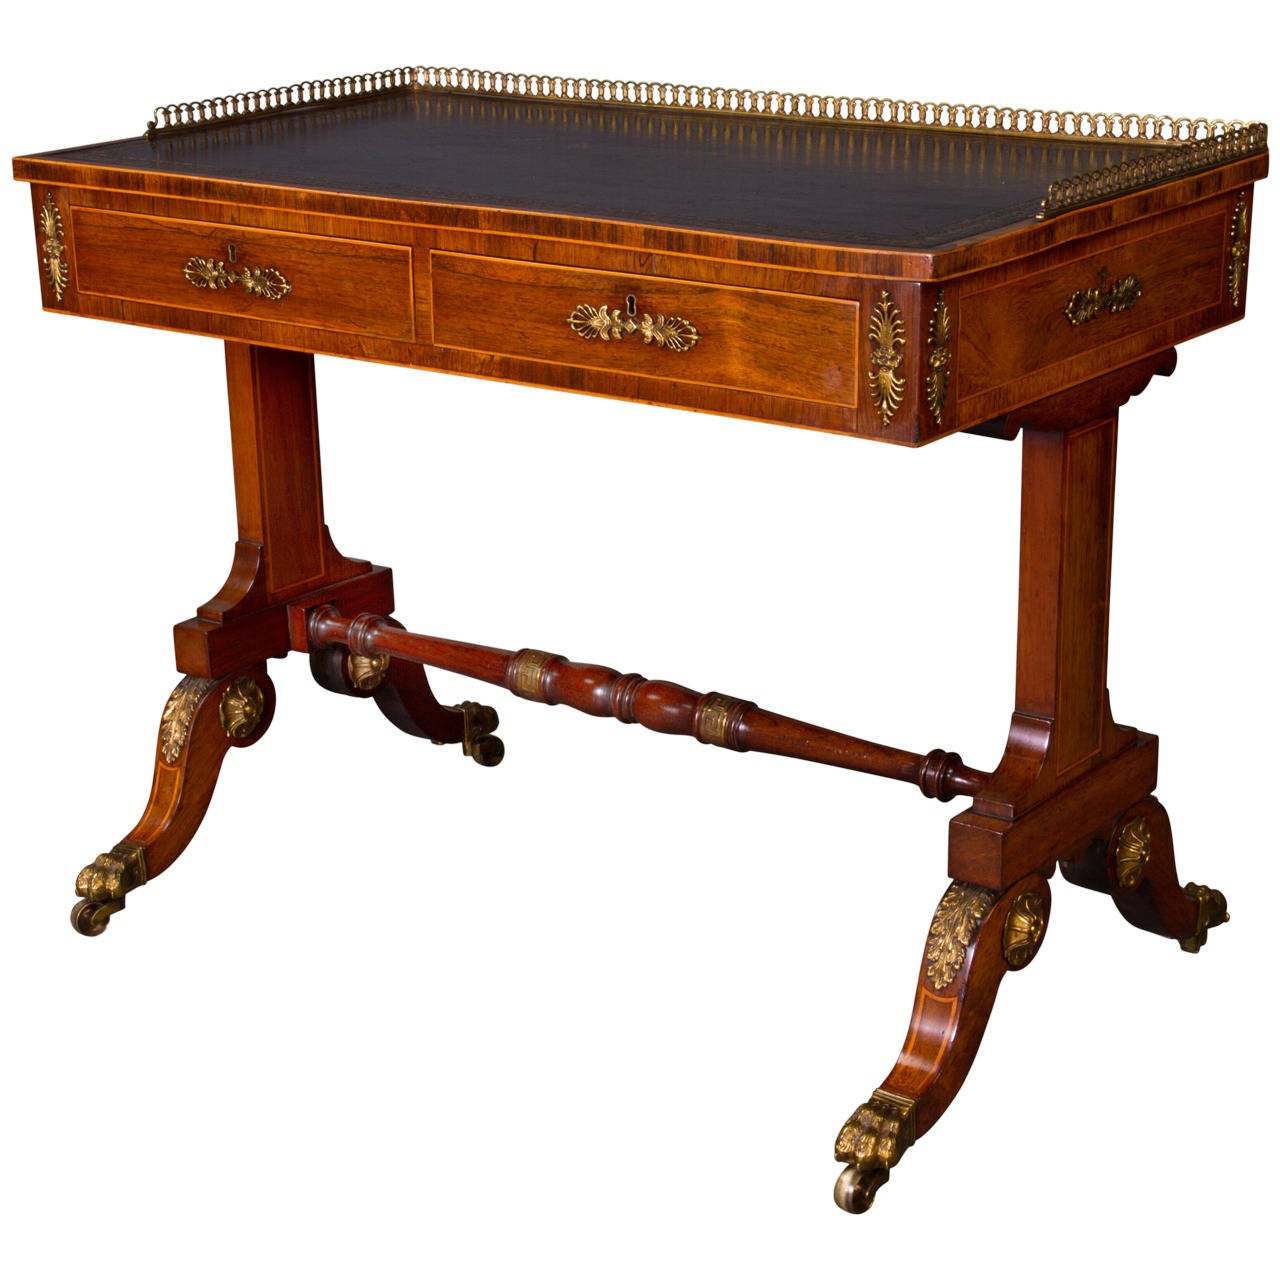 Fine Regency Writing Table Attributed to John Mclean 1